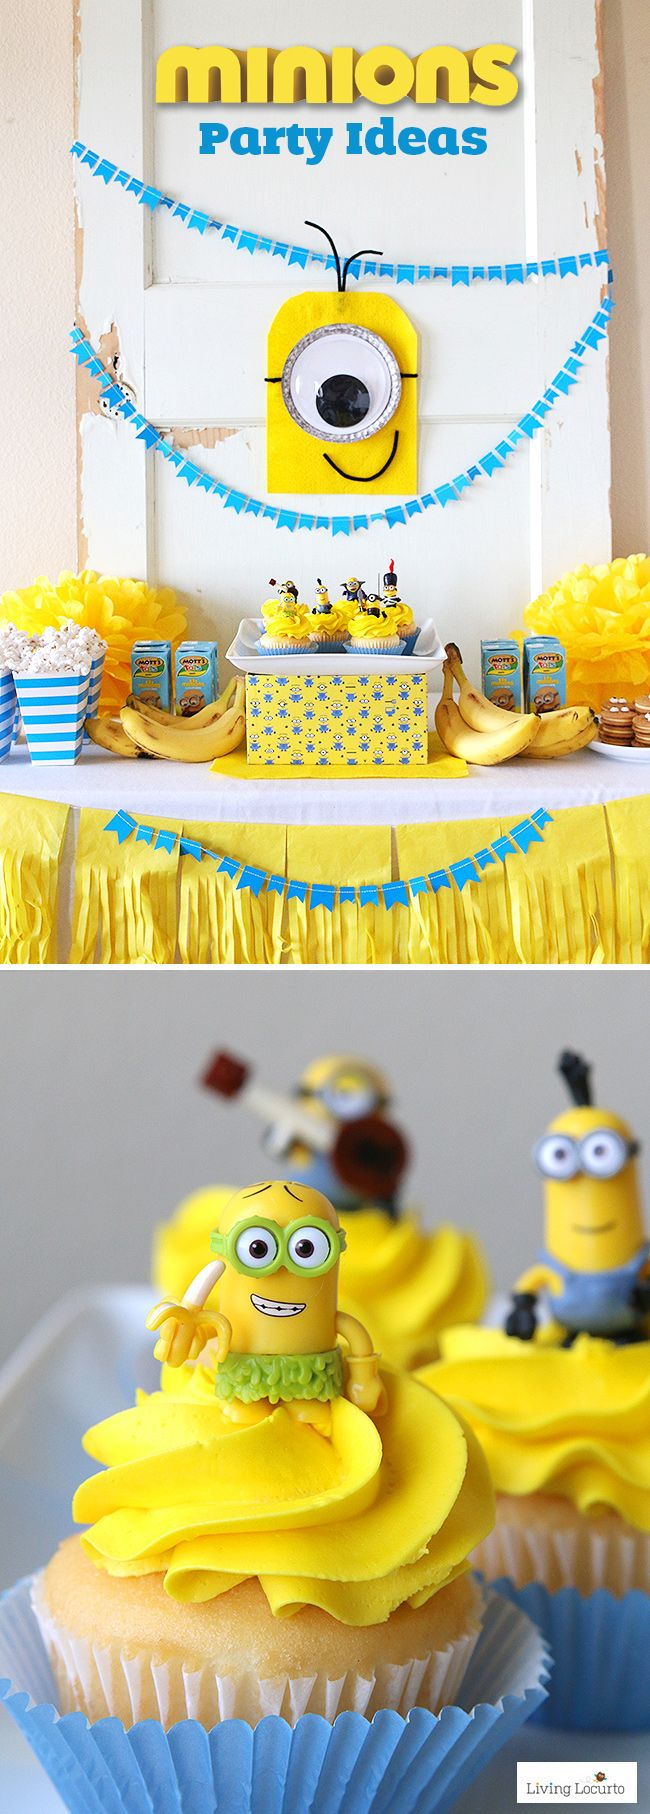 Cute Minions Party Ideas! Fun DIY ideas for a Minions Party or Despicable Me Minion Themed Birthday Party. by @LivingLocurto